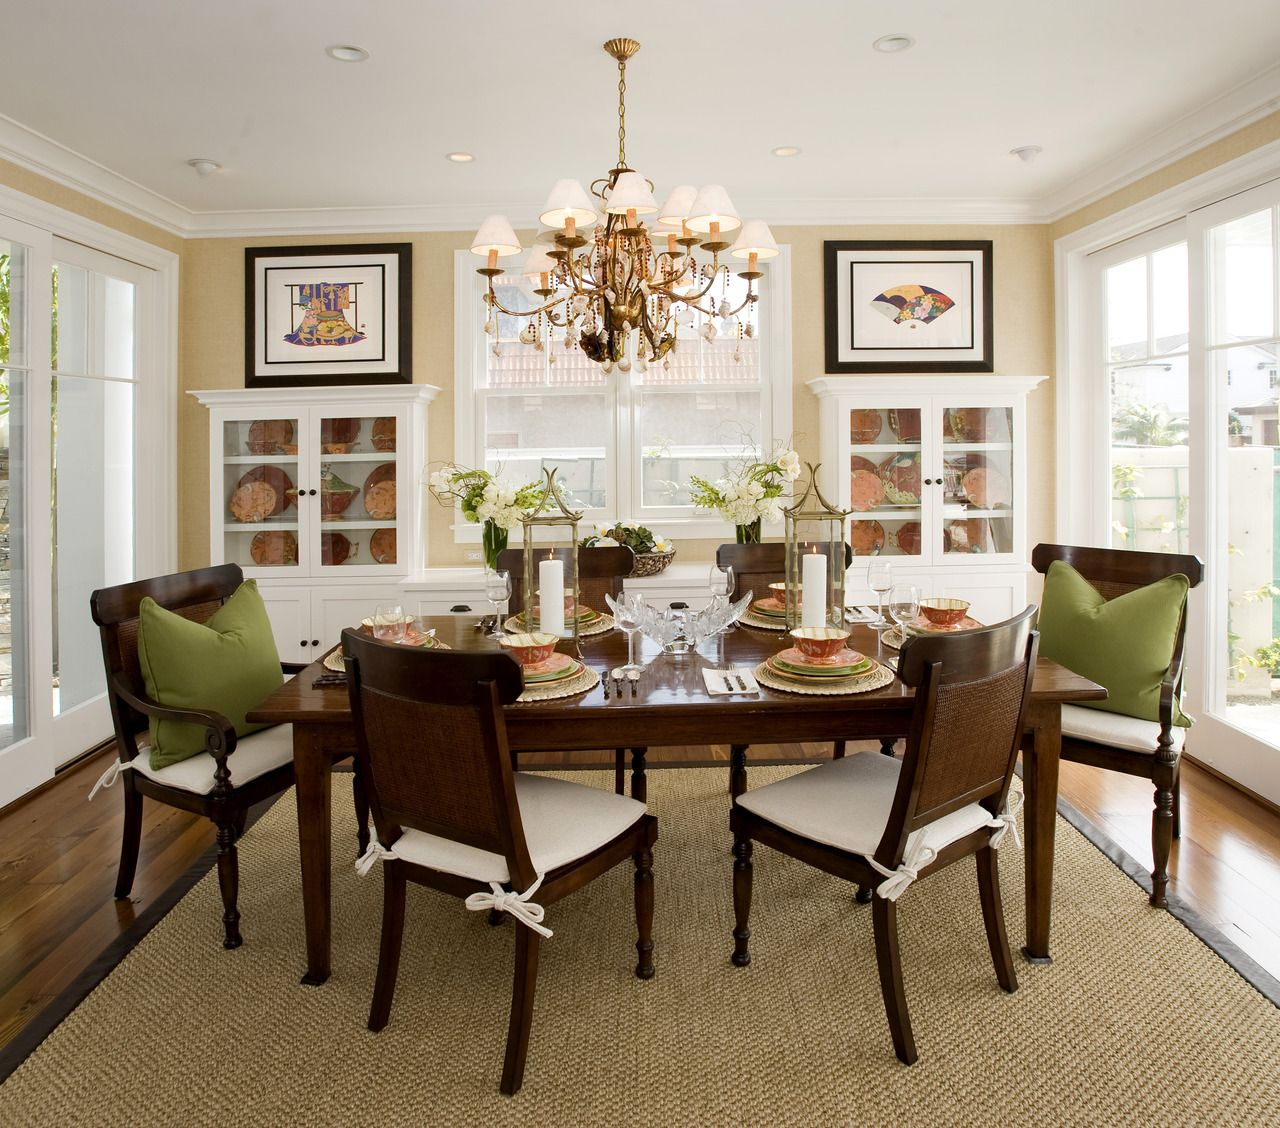 Casual Dining Room Chandeliers: Stunning Dining Room With A A Soft Color Palette And A